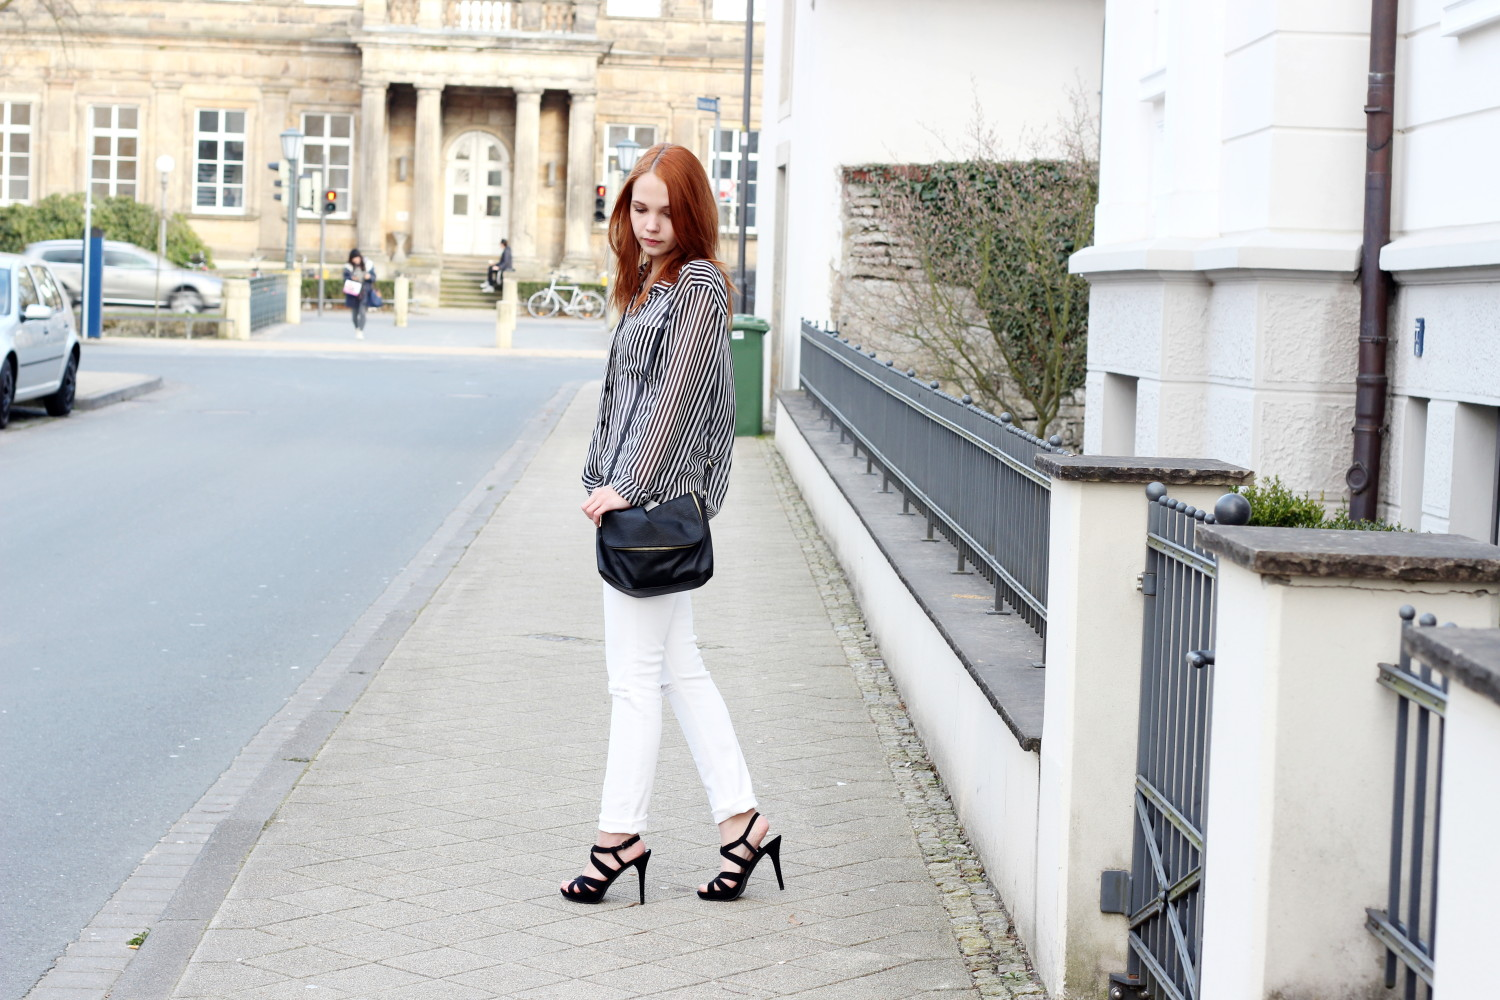 bezaubernde nana, fashionblog, germany, outfit, streetstyle, black white striped mango blouse, white h&m jeans, white denim, h&m bag, deichmann high heels, black and white